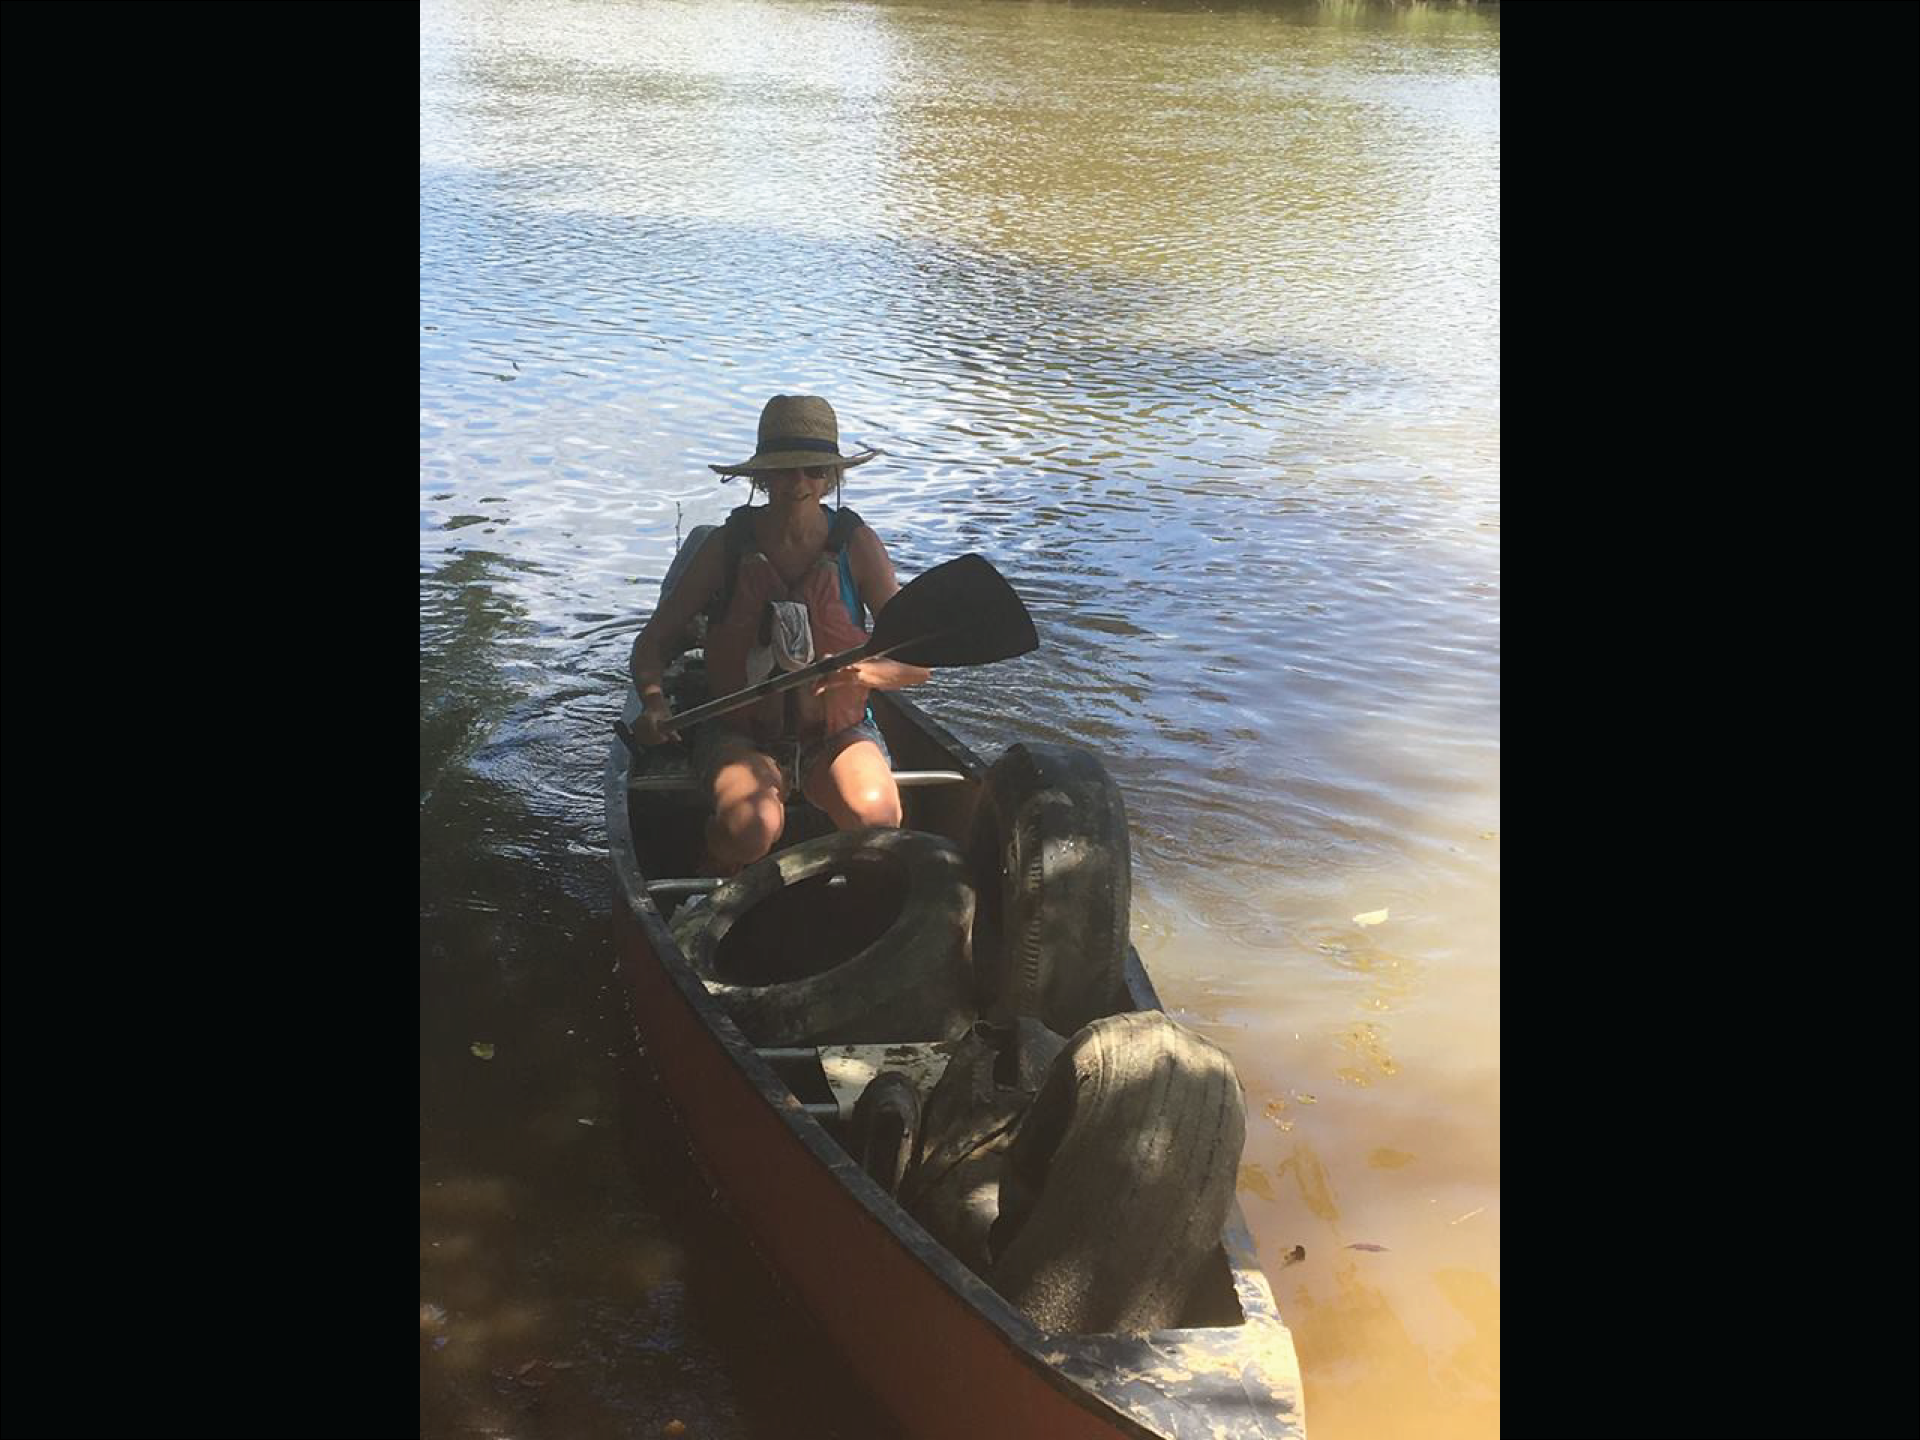 Tires in a canoe in the Dan River